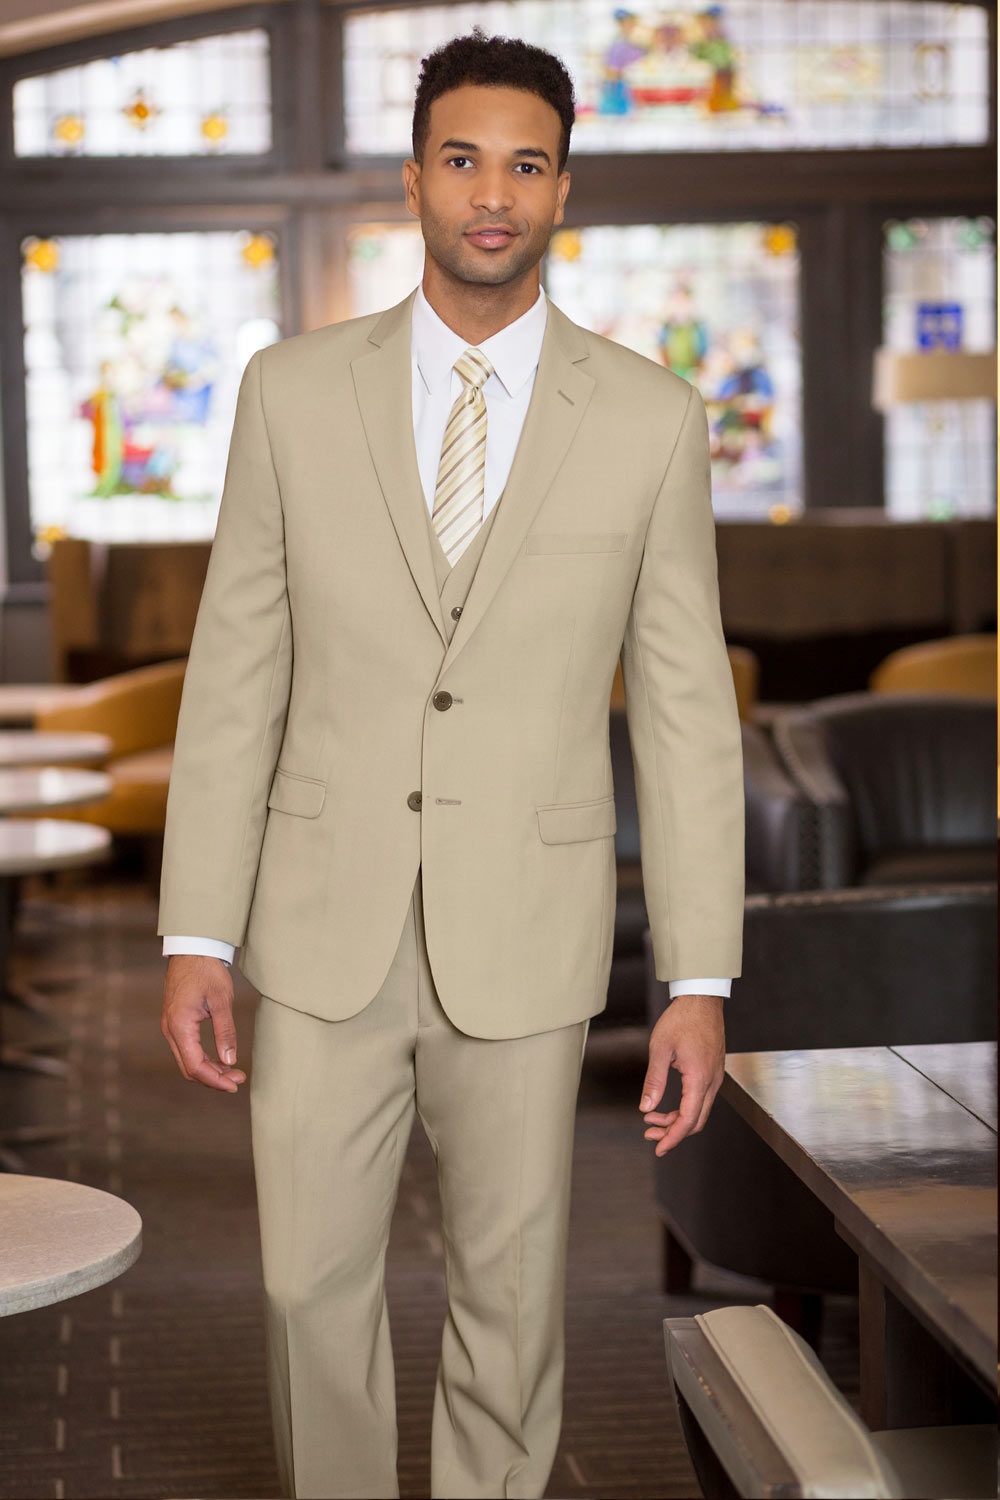 TUXEDOS, SUITS, FORMAL WEAR AND ACCESSORIES - Belmeade Mens Wear